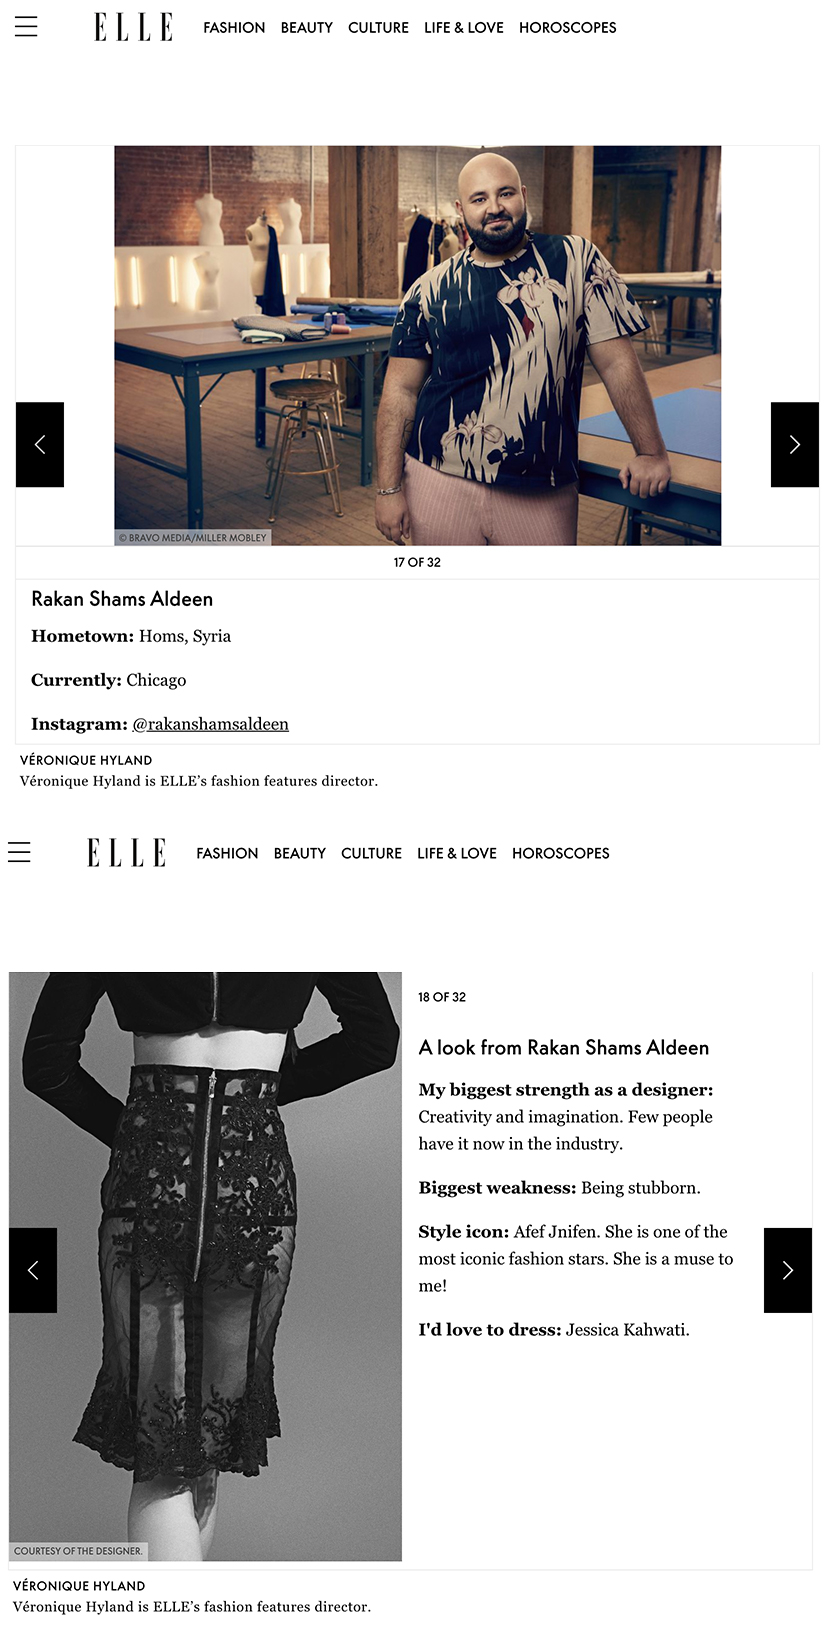 elle feature.jpg